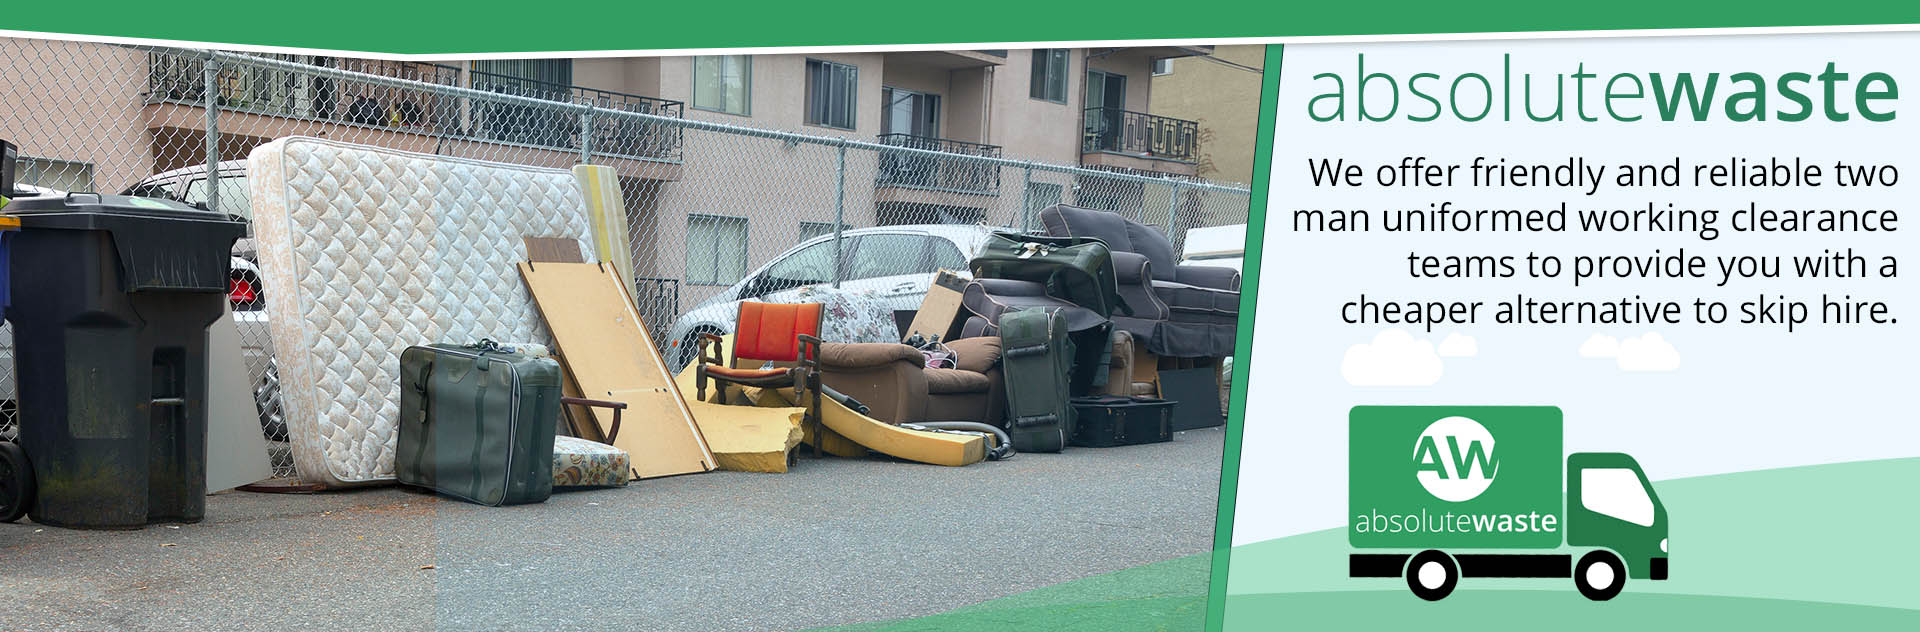 Waste removal for homes